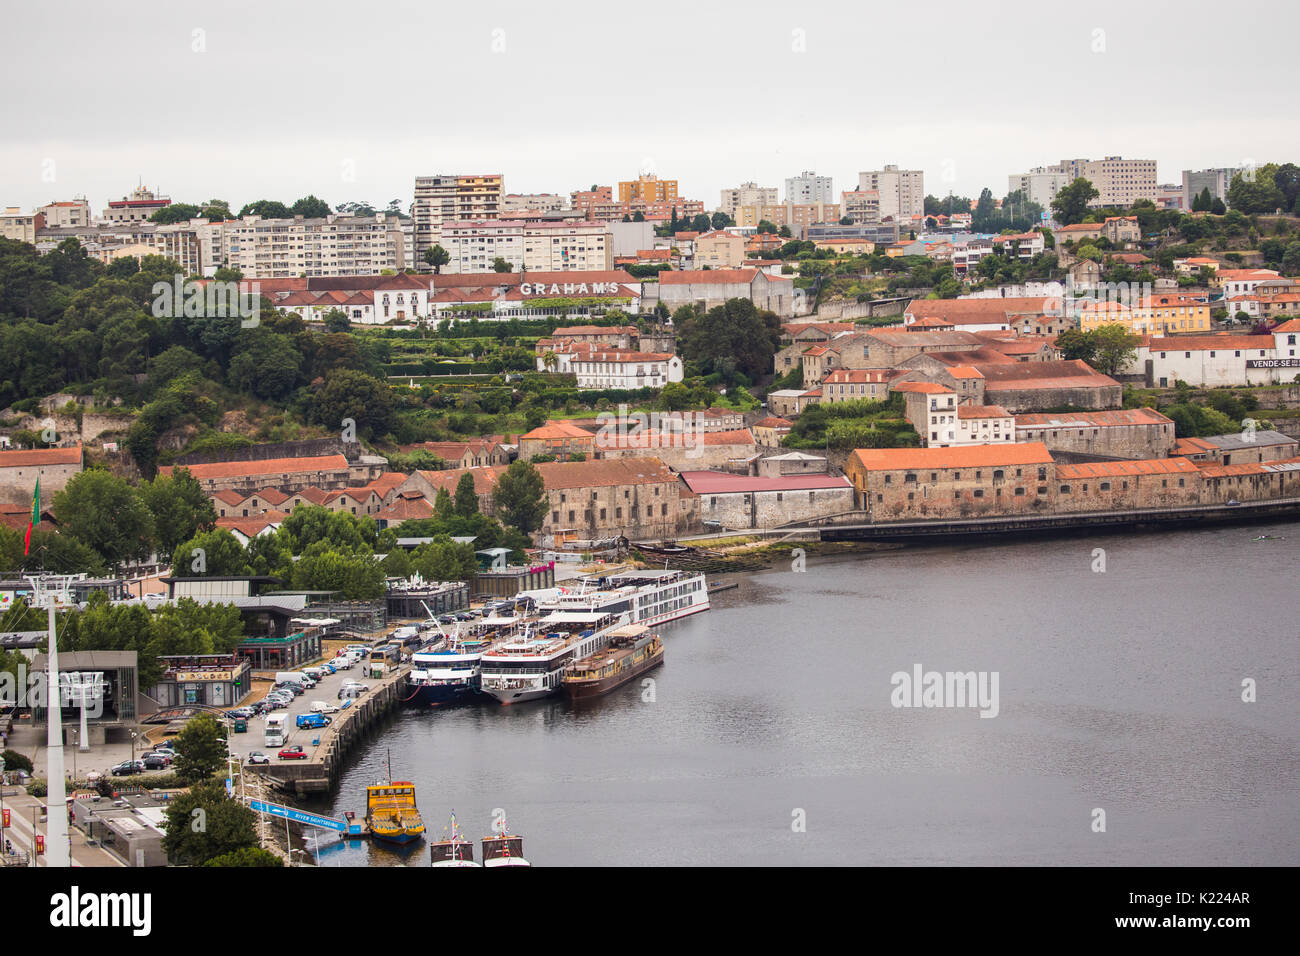 old market porto portugal stockfotos old market porto portugal bilder alamy. Black Bedroom Furniture Sets. Home Design Ideas